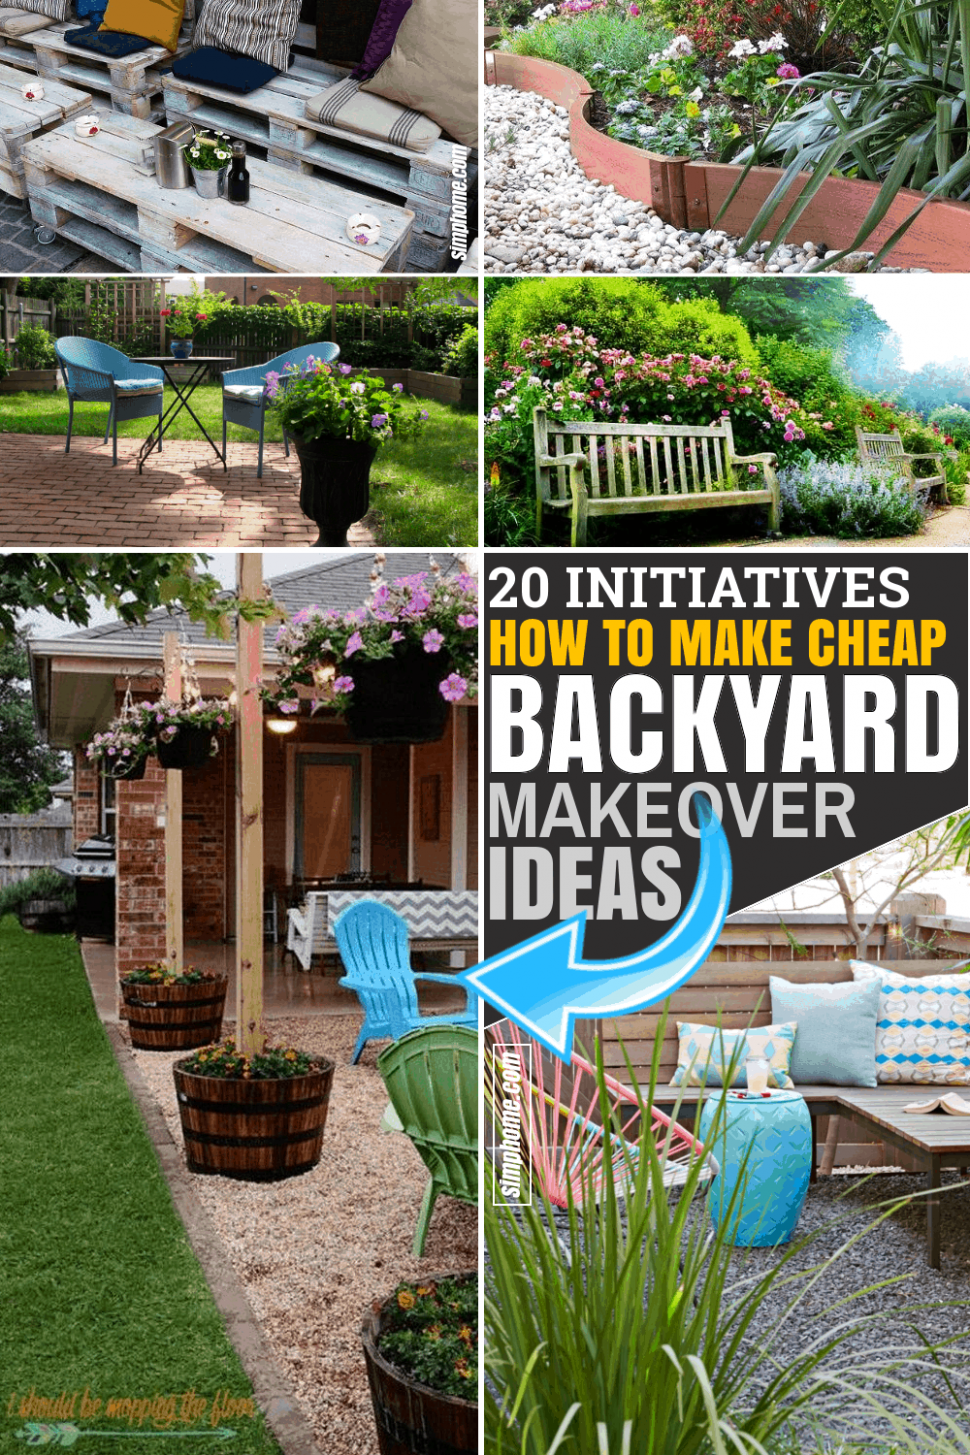 9 Initiatives of Cheap Backyard Makeover ideas - Simphome